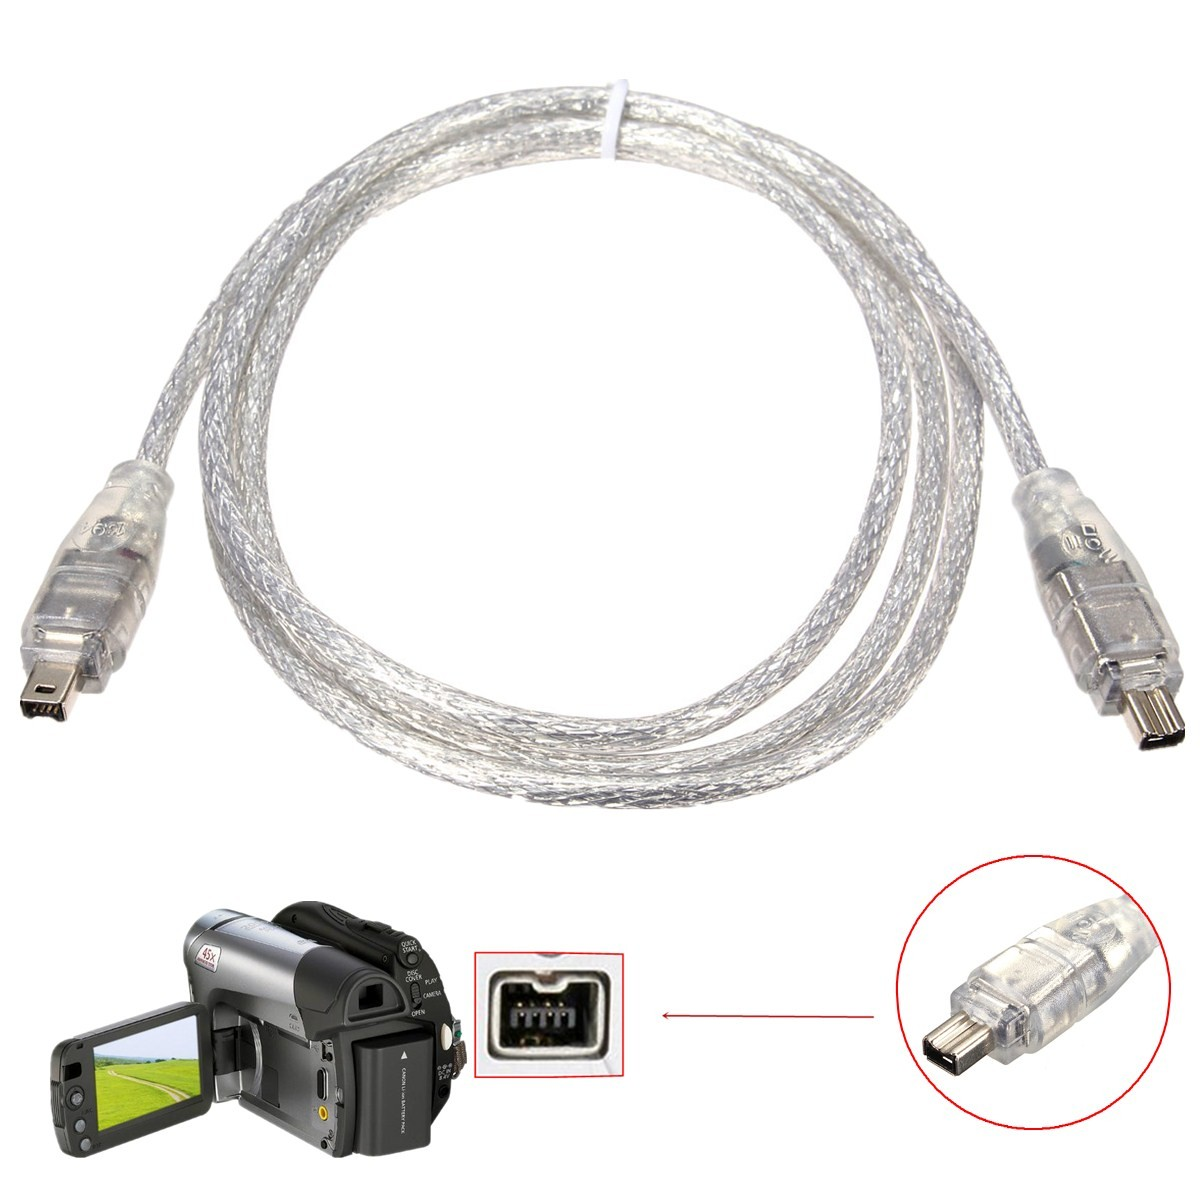 1 2m Ieee Standard 4 Pin Male To 4 Pin Male Firewire Dv Data Cable Adapter